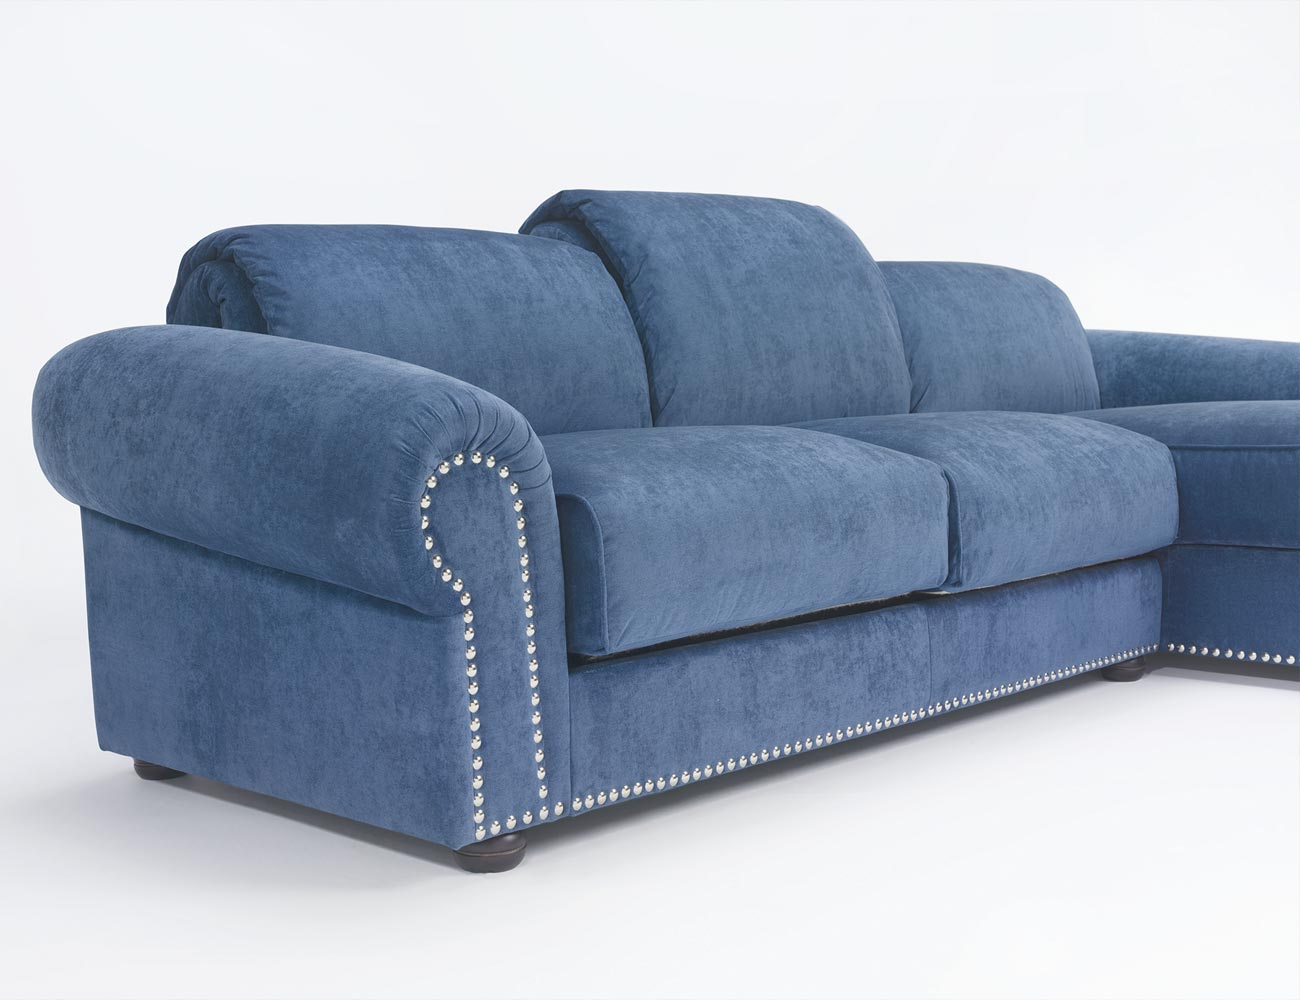 Sofa chaiselongue gran lujo decorativo azul 118